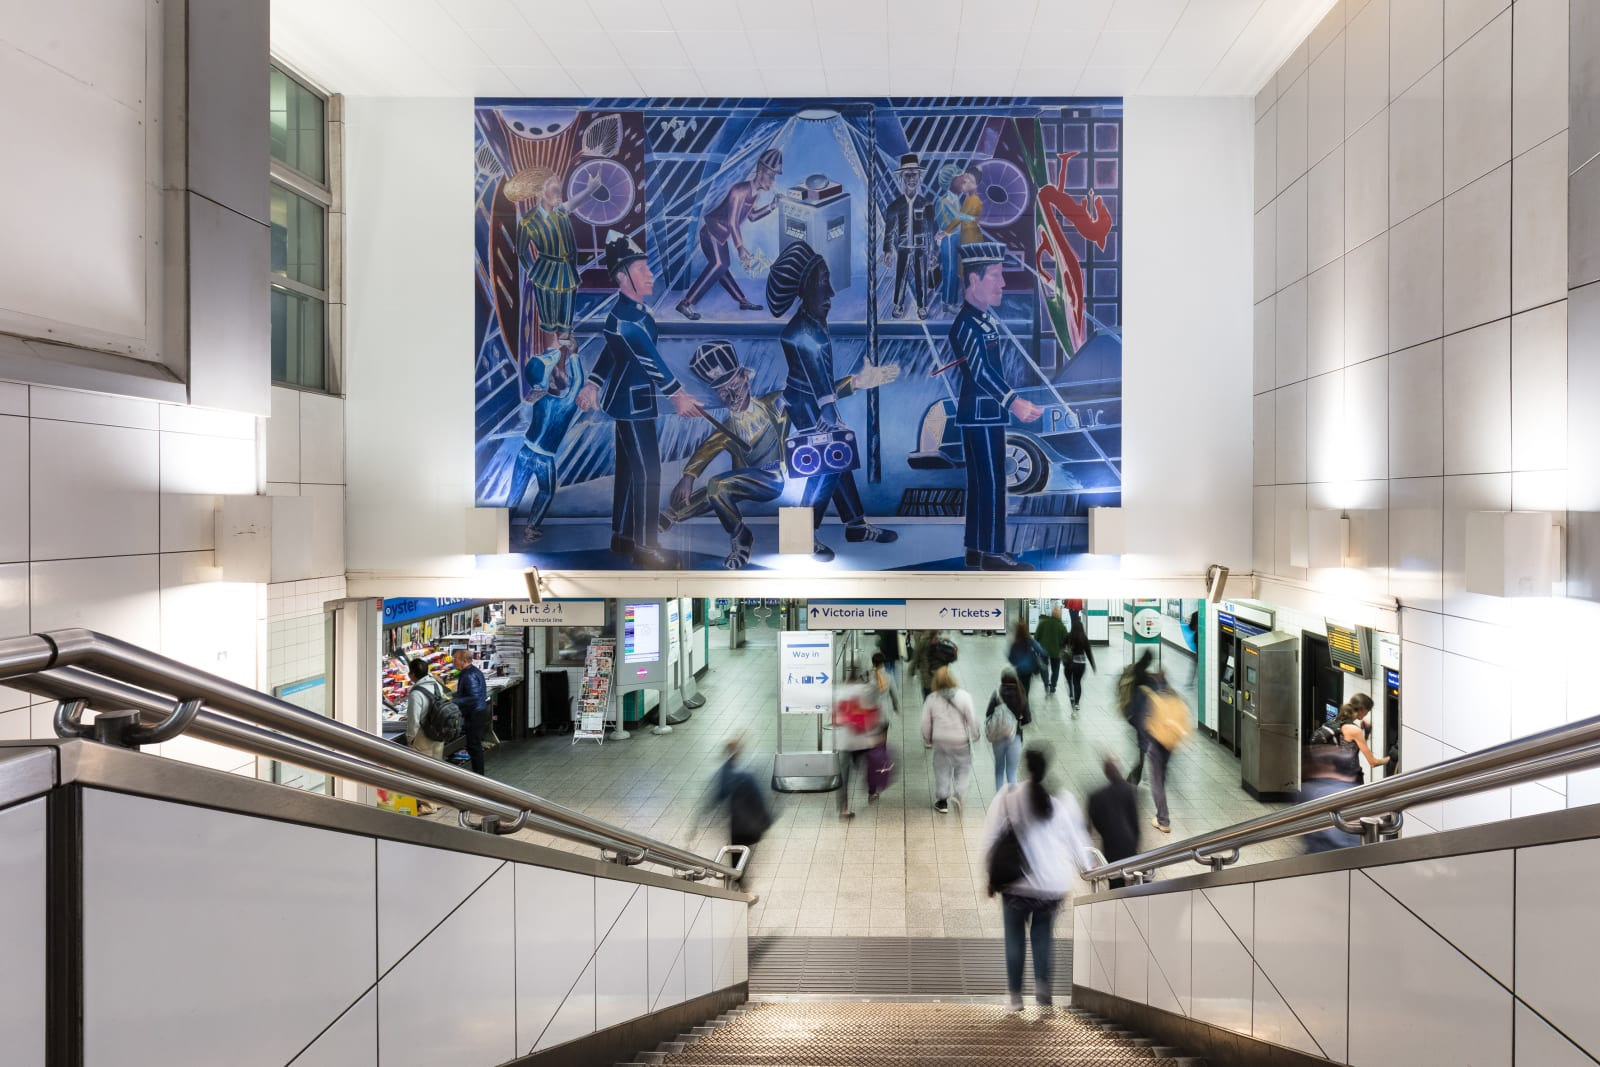 <p>Installation view: '<span>Brixton Blue', TFL Commission, Brixton Underground Station, London (2019).</span></p>